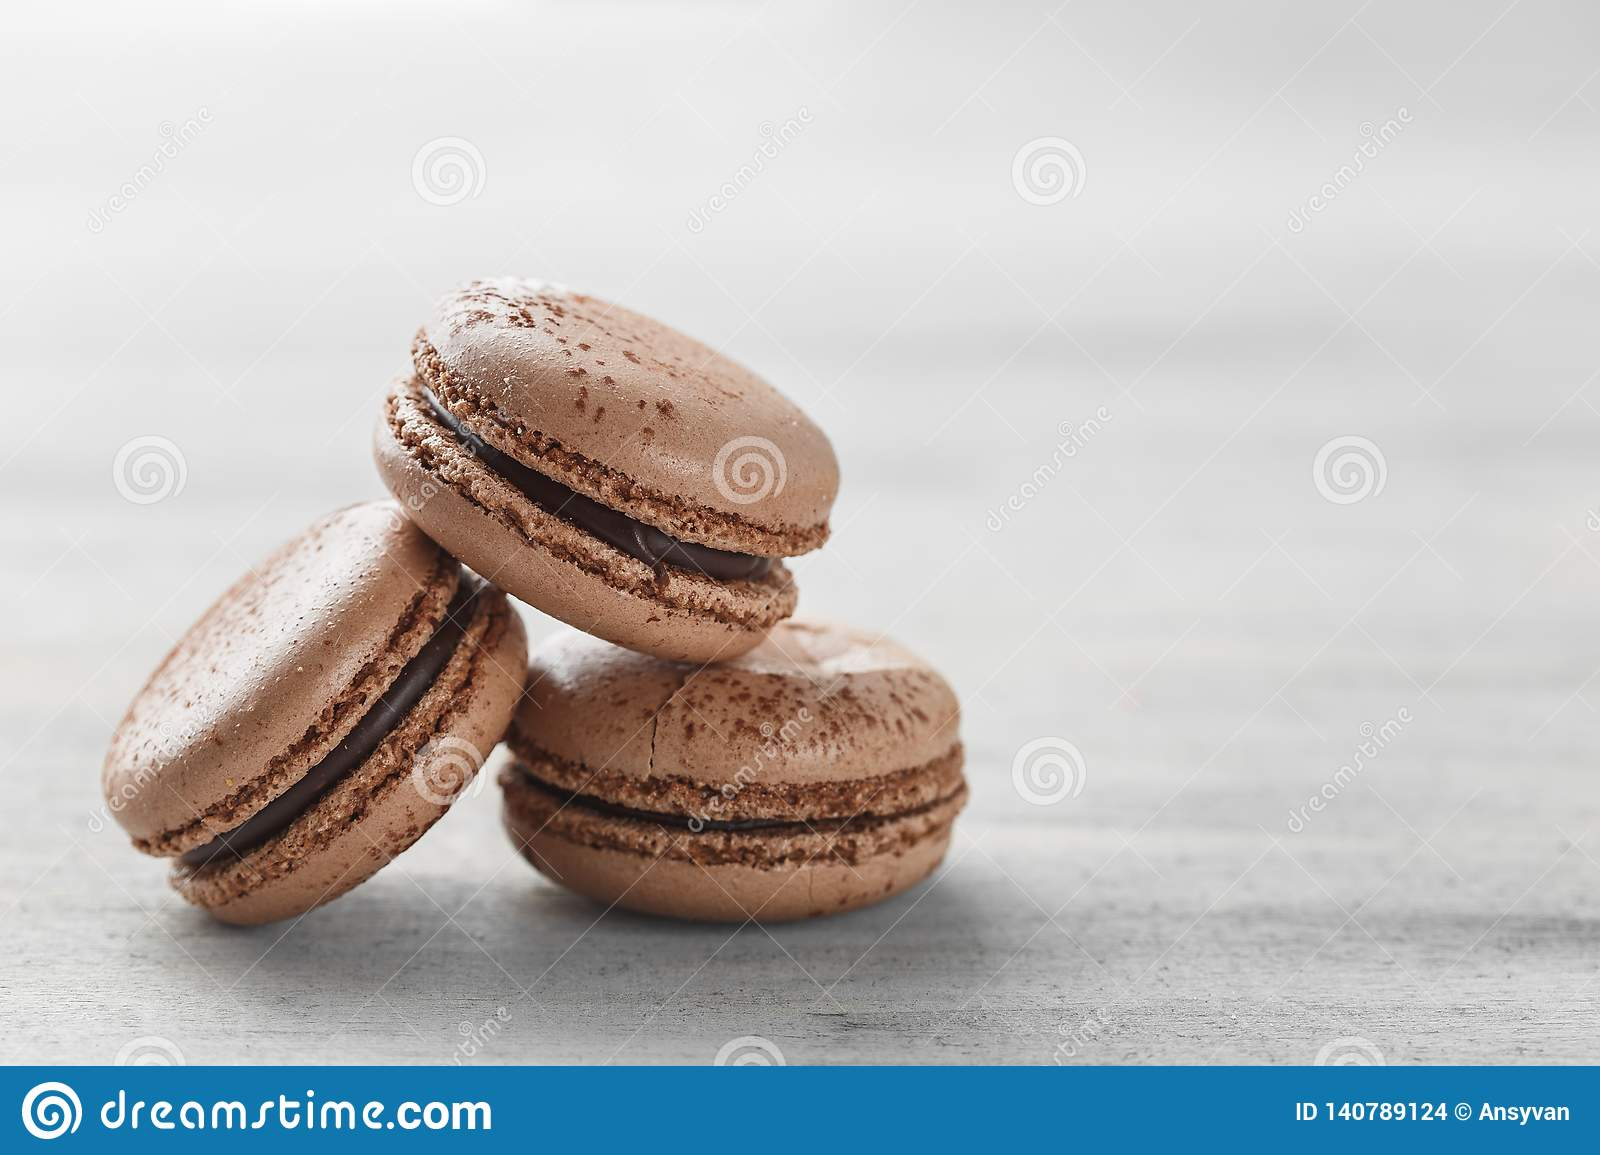 Chocolate Macarons Closeup, French Pastry Cookies